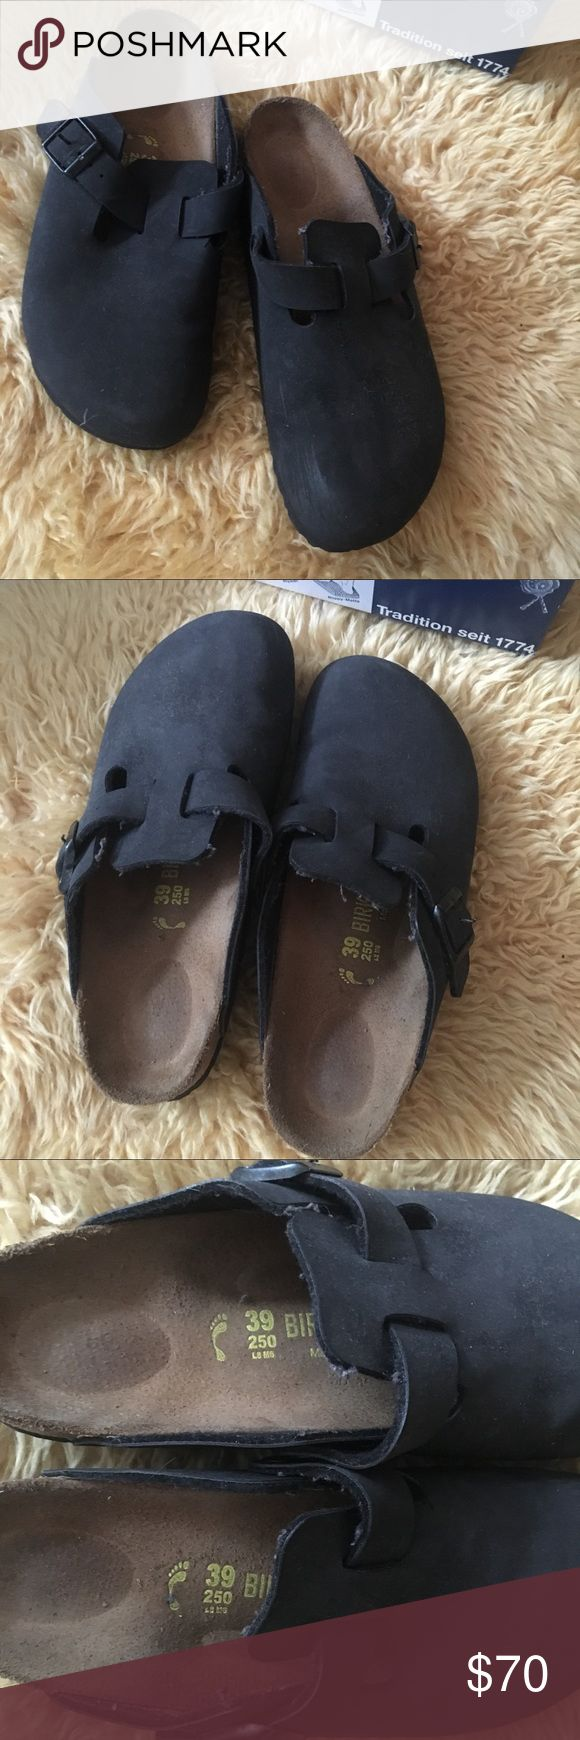 Black Birkenstock Clogs Like new only worn a few times! I am normally a size 7.5/8 and these still fit me! Especially when wearing cozy socks. Birkenstock Shoes Mules & Clogs